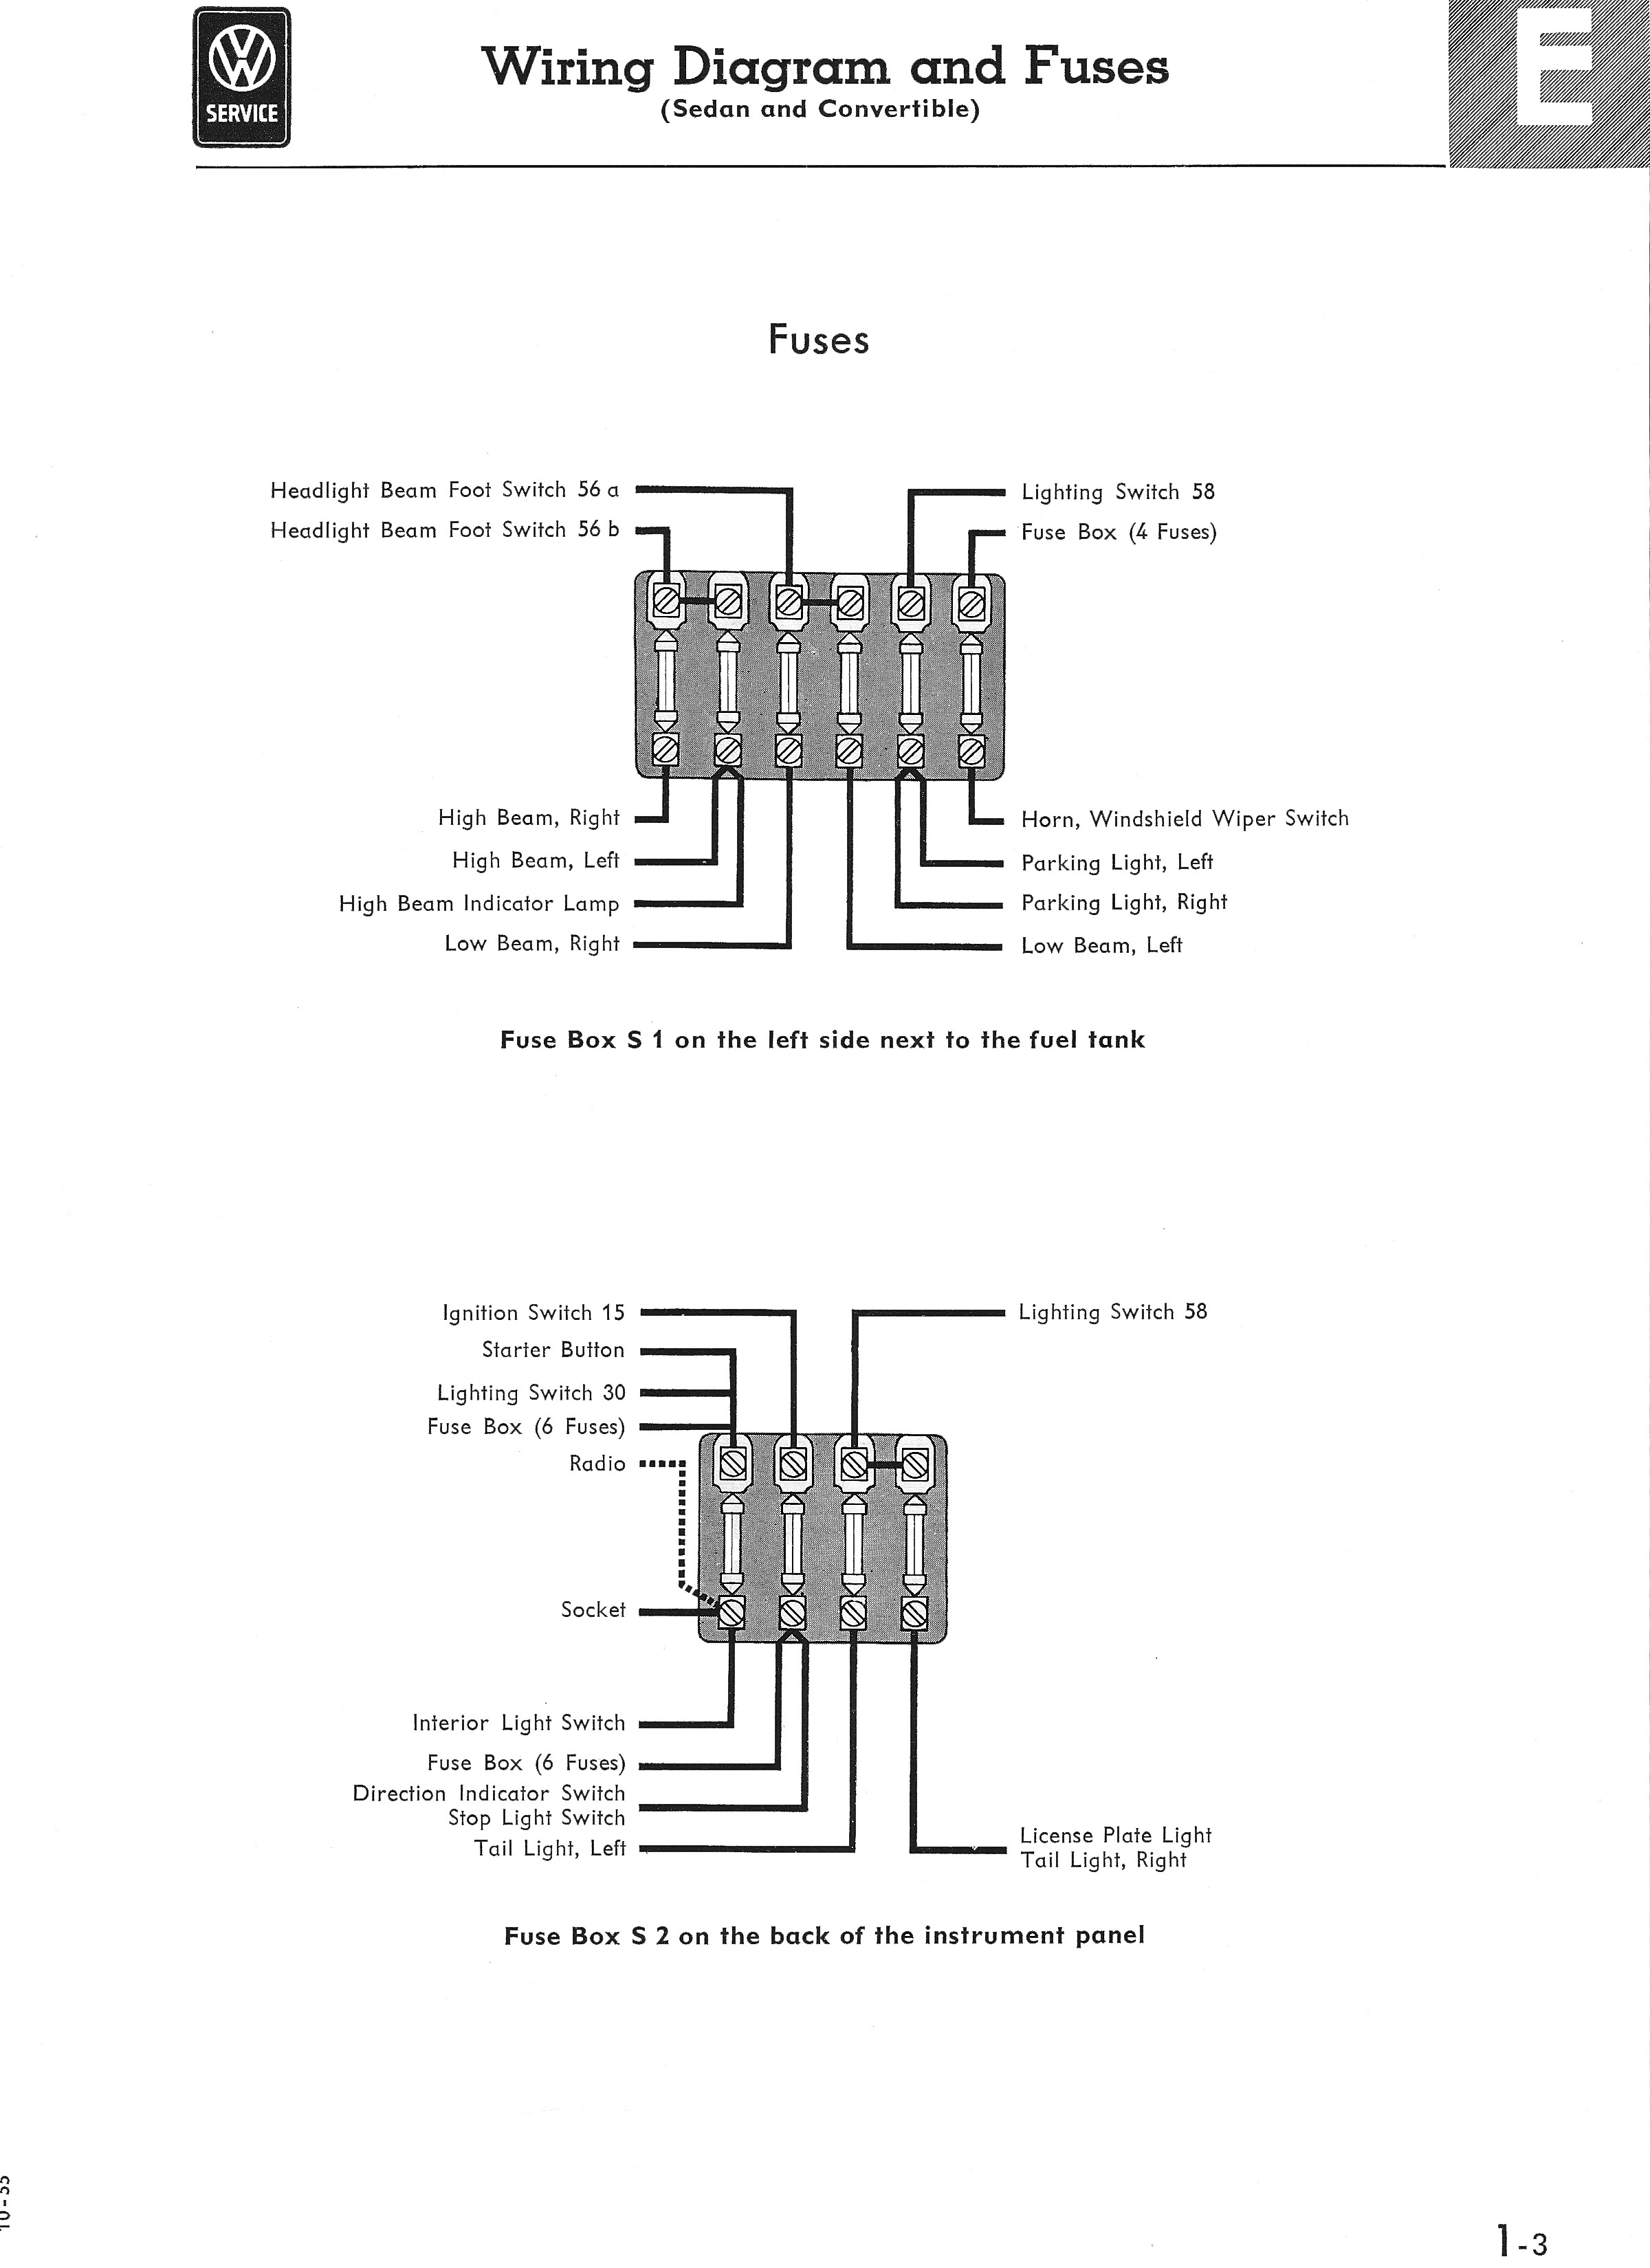 Type 1 Wiring Diagrams 1973 Charger Diagram Ignition